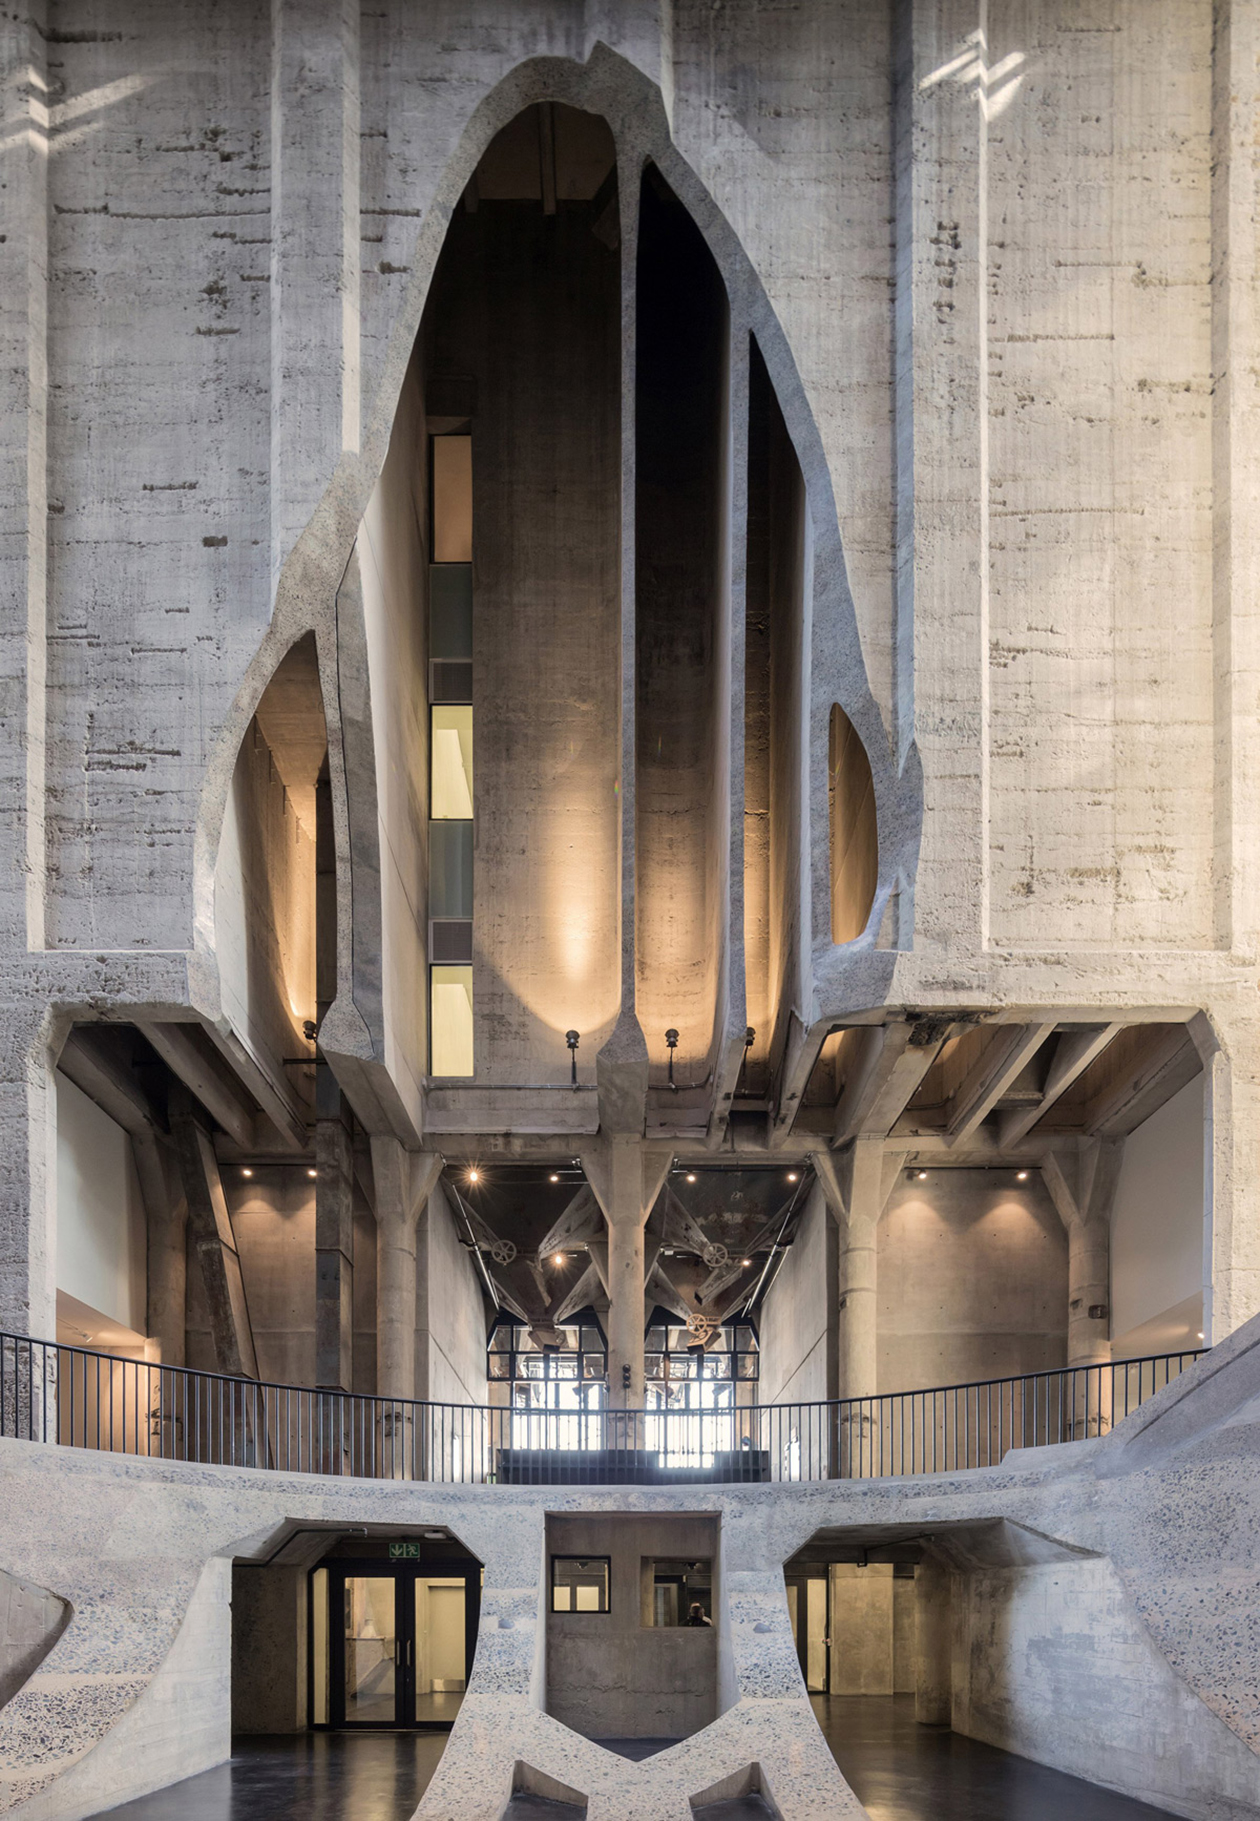 Crea.Tips - Architecture - Mimari - Cape Town Grain Silo - Art Galleries - MOCAA